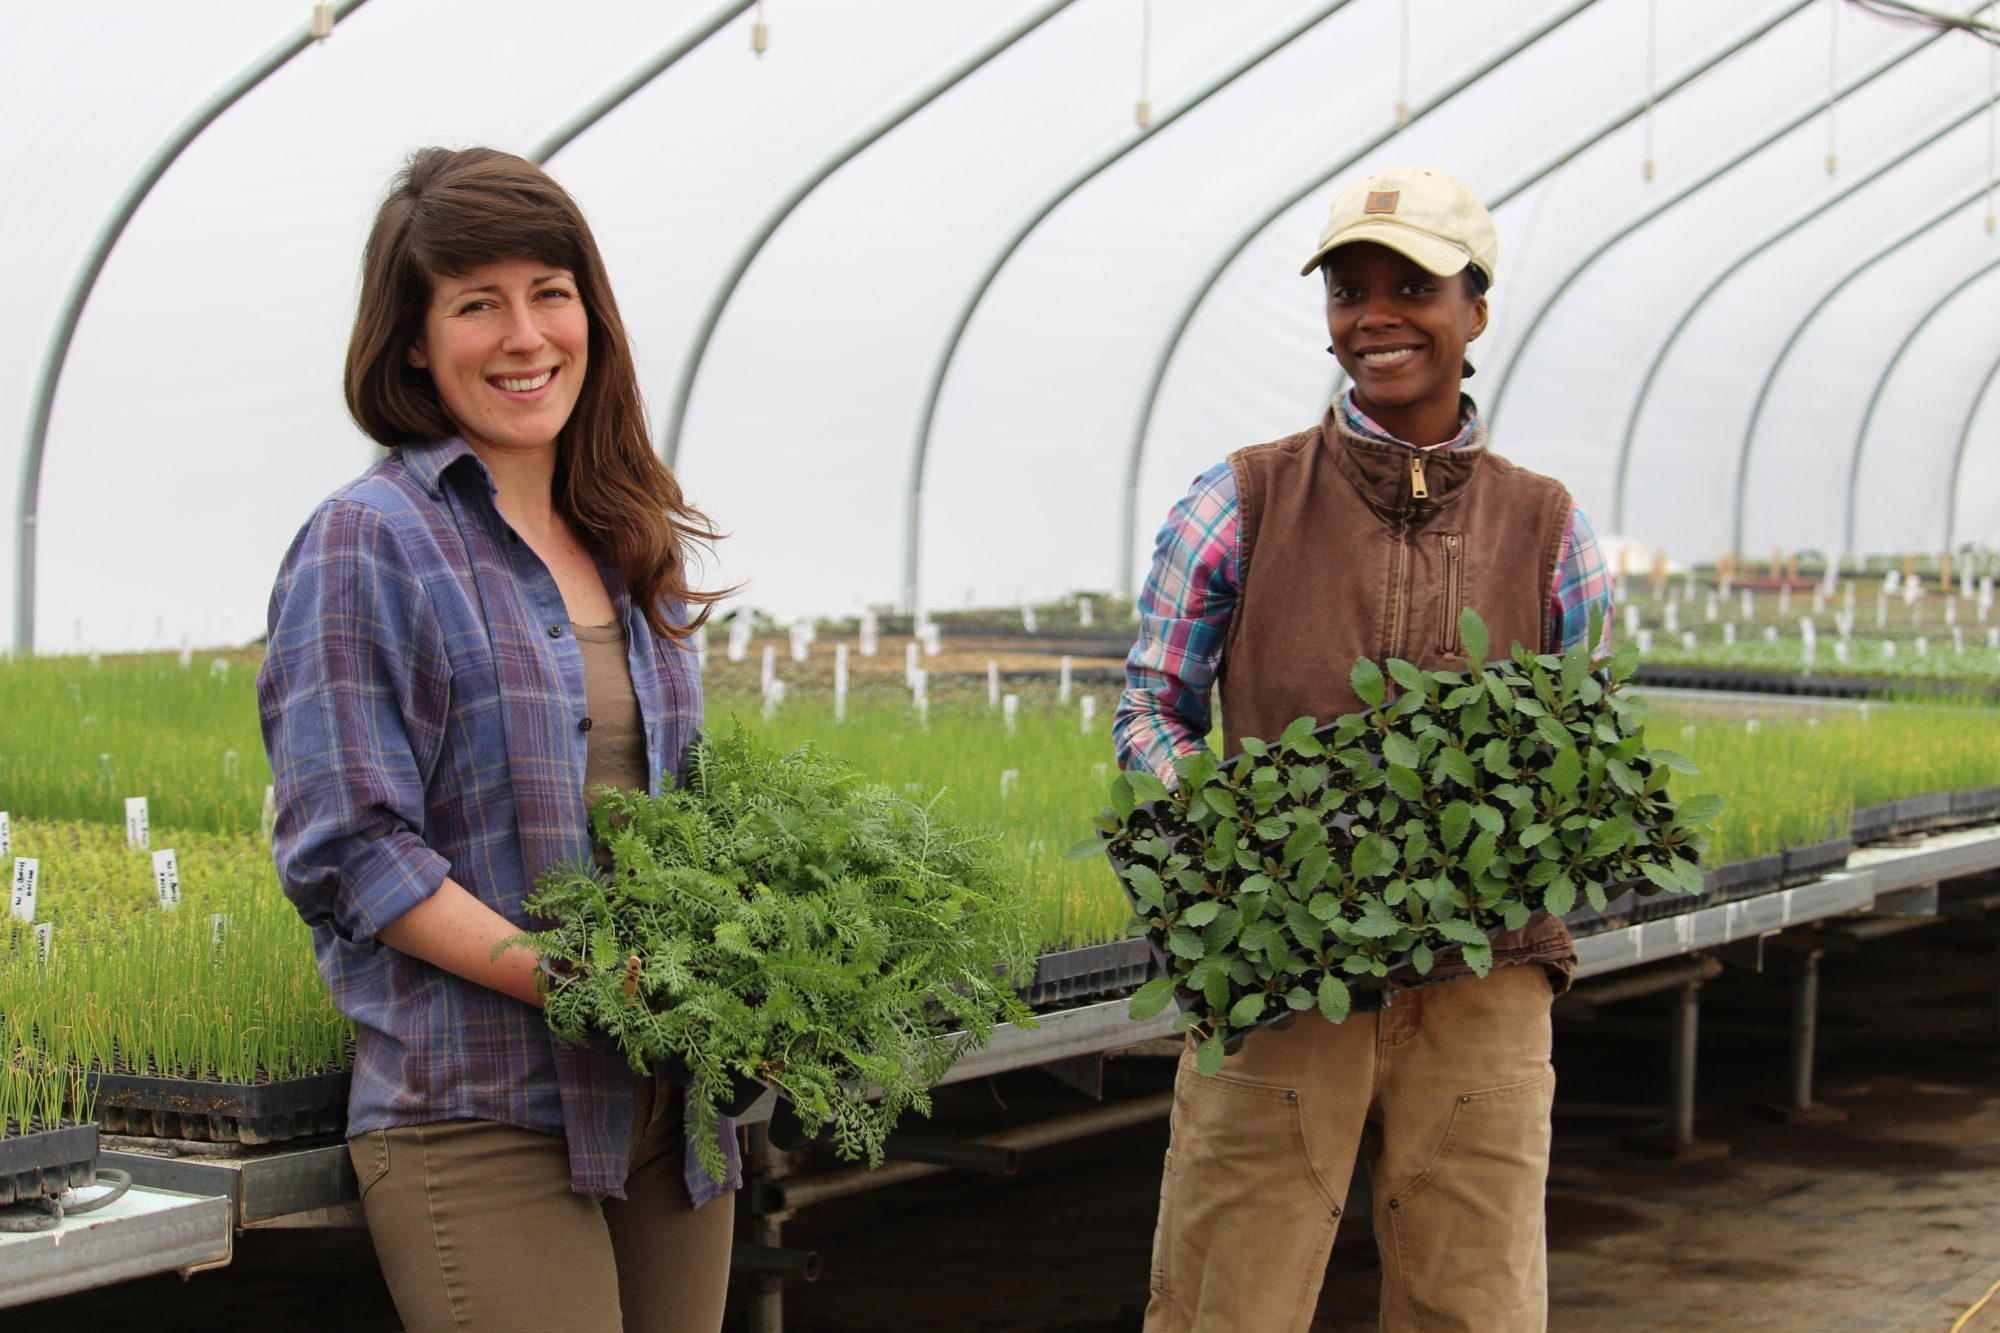 two women farmers holding trays of plants